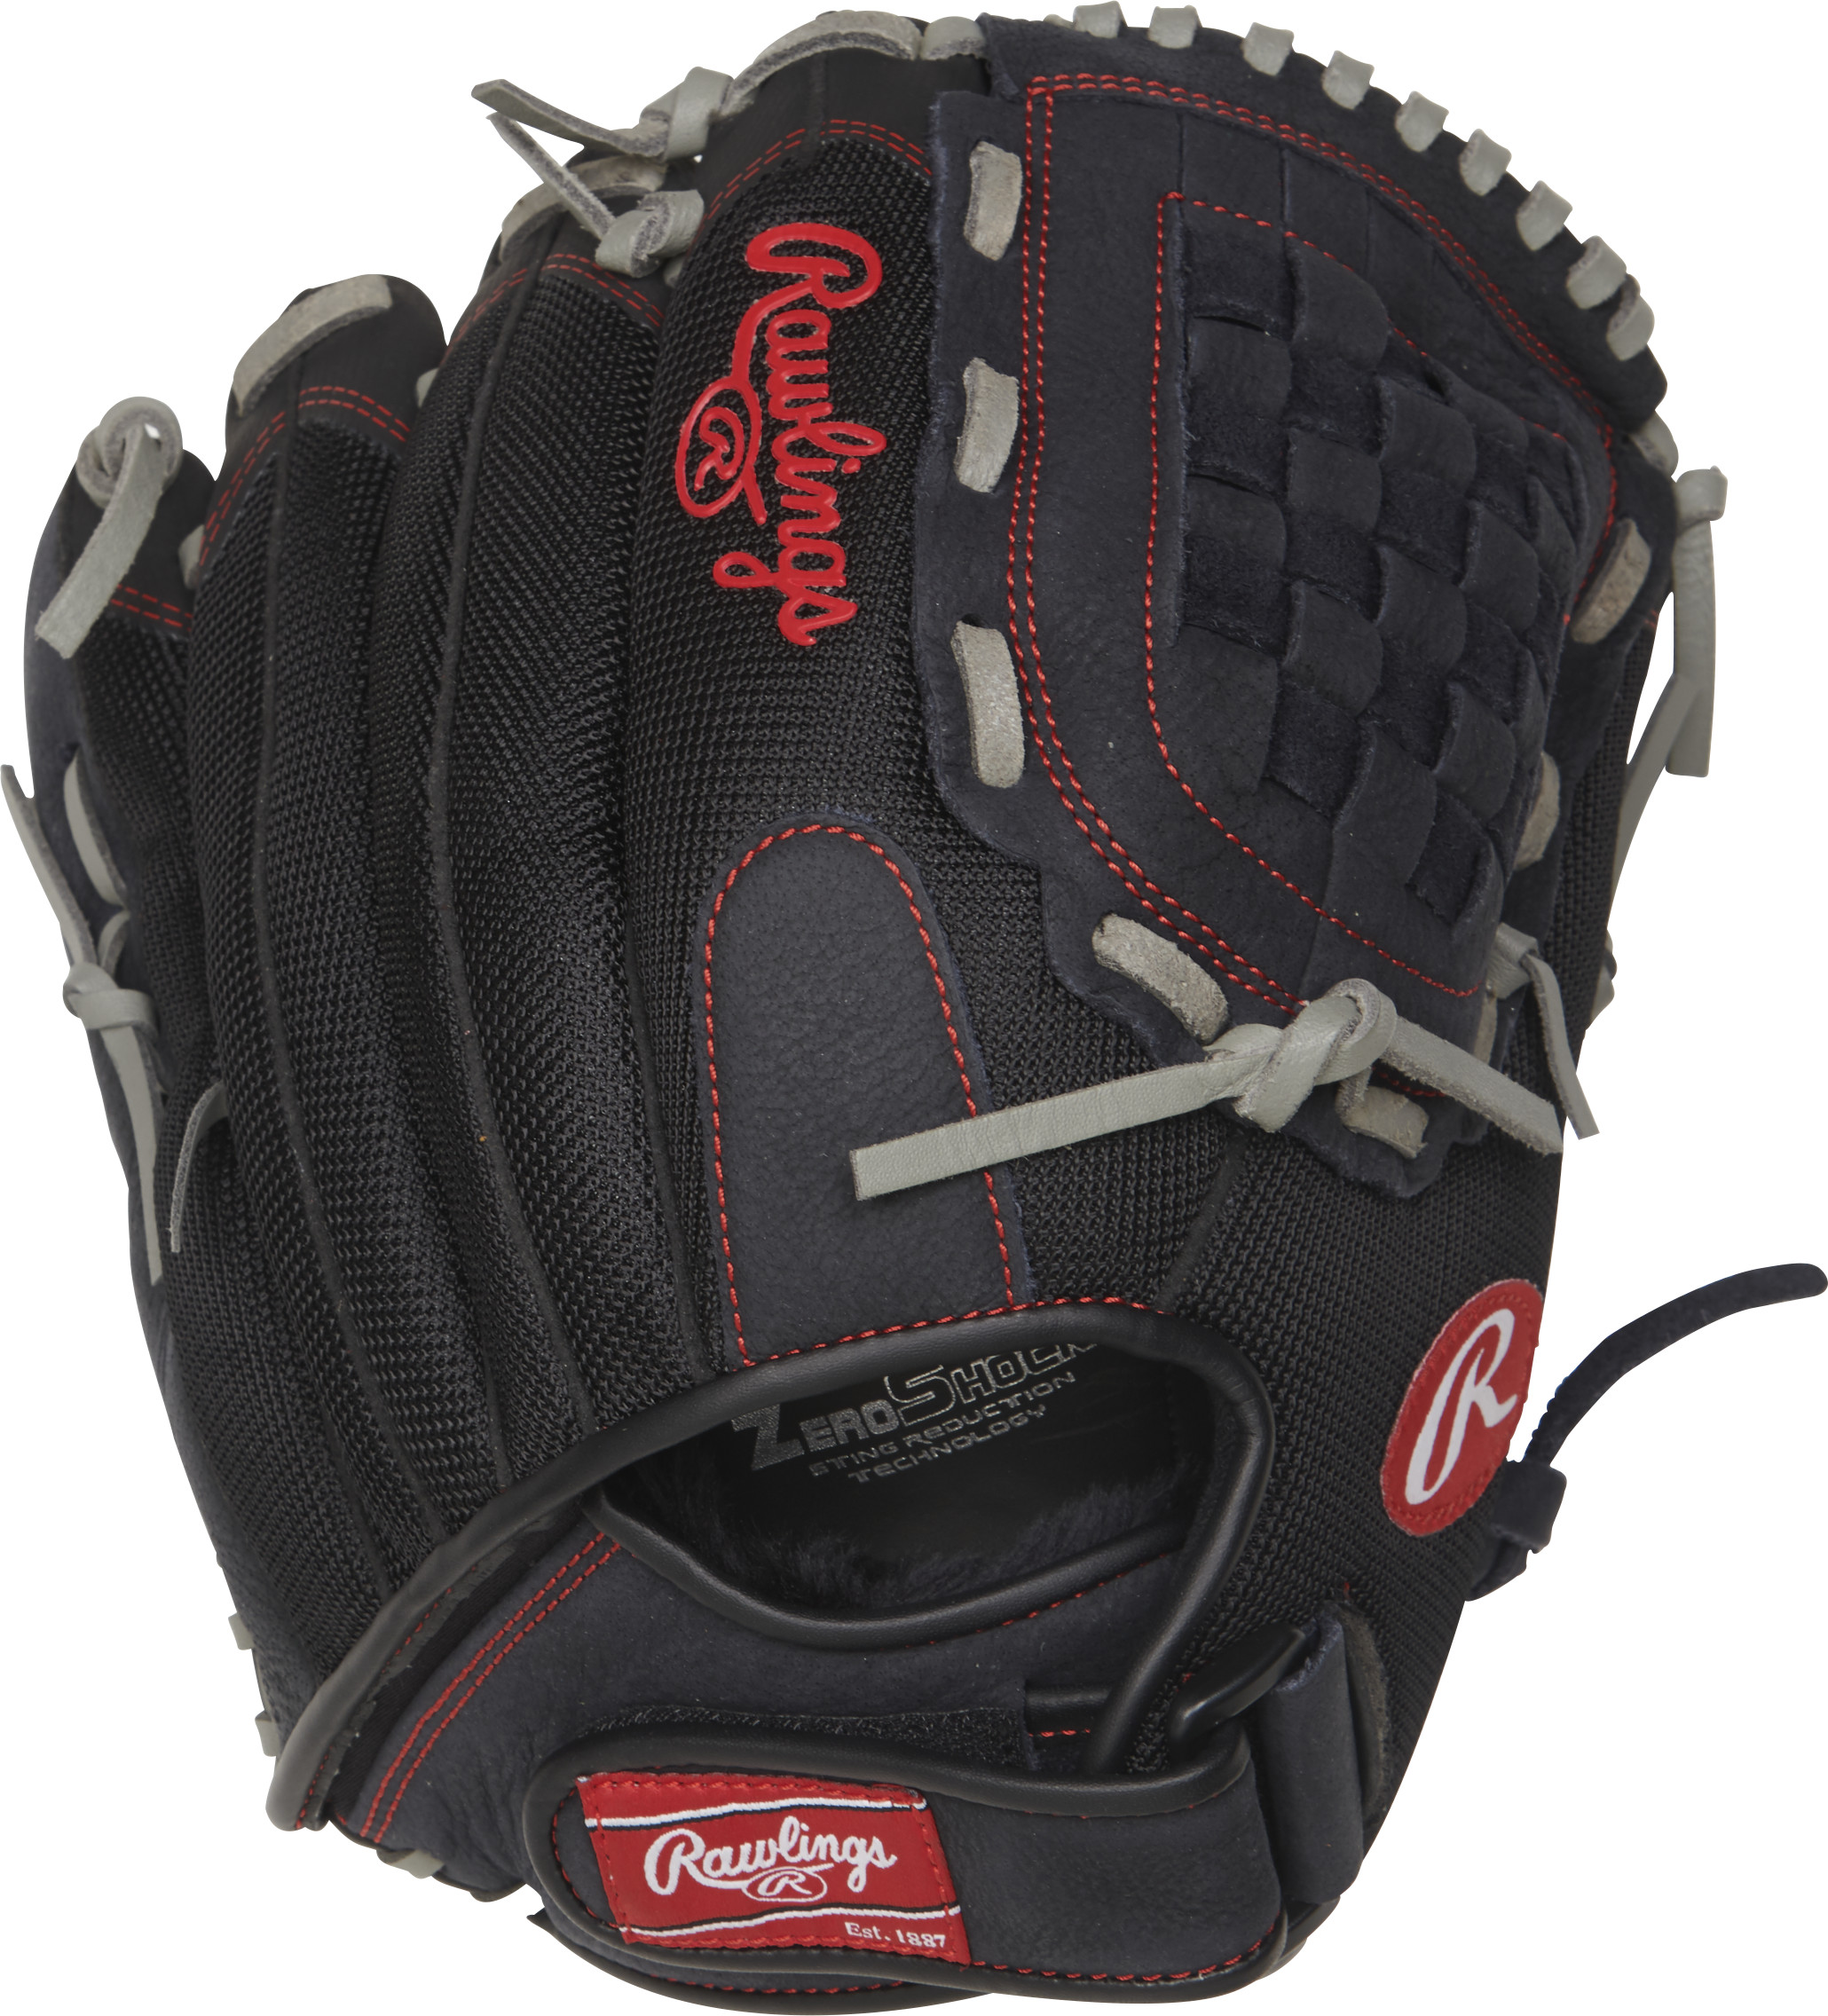 http://www.bestbatdeals.com/images/gloves/rawlings/R125BGS-2.jpg